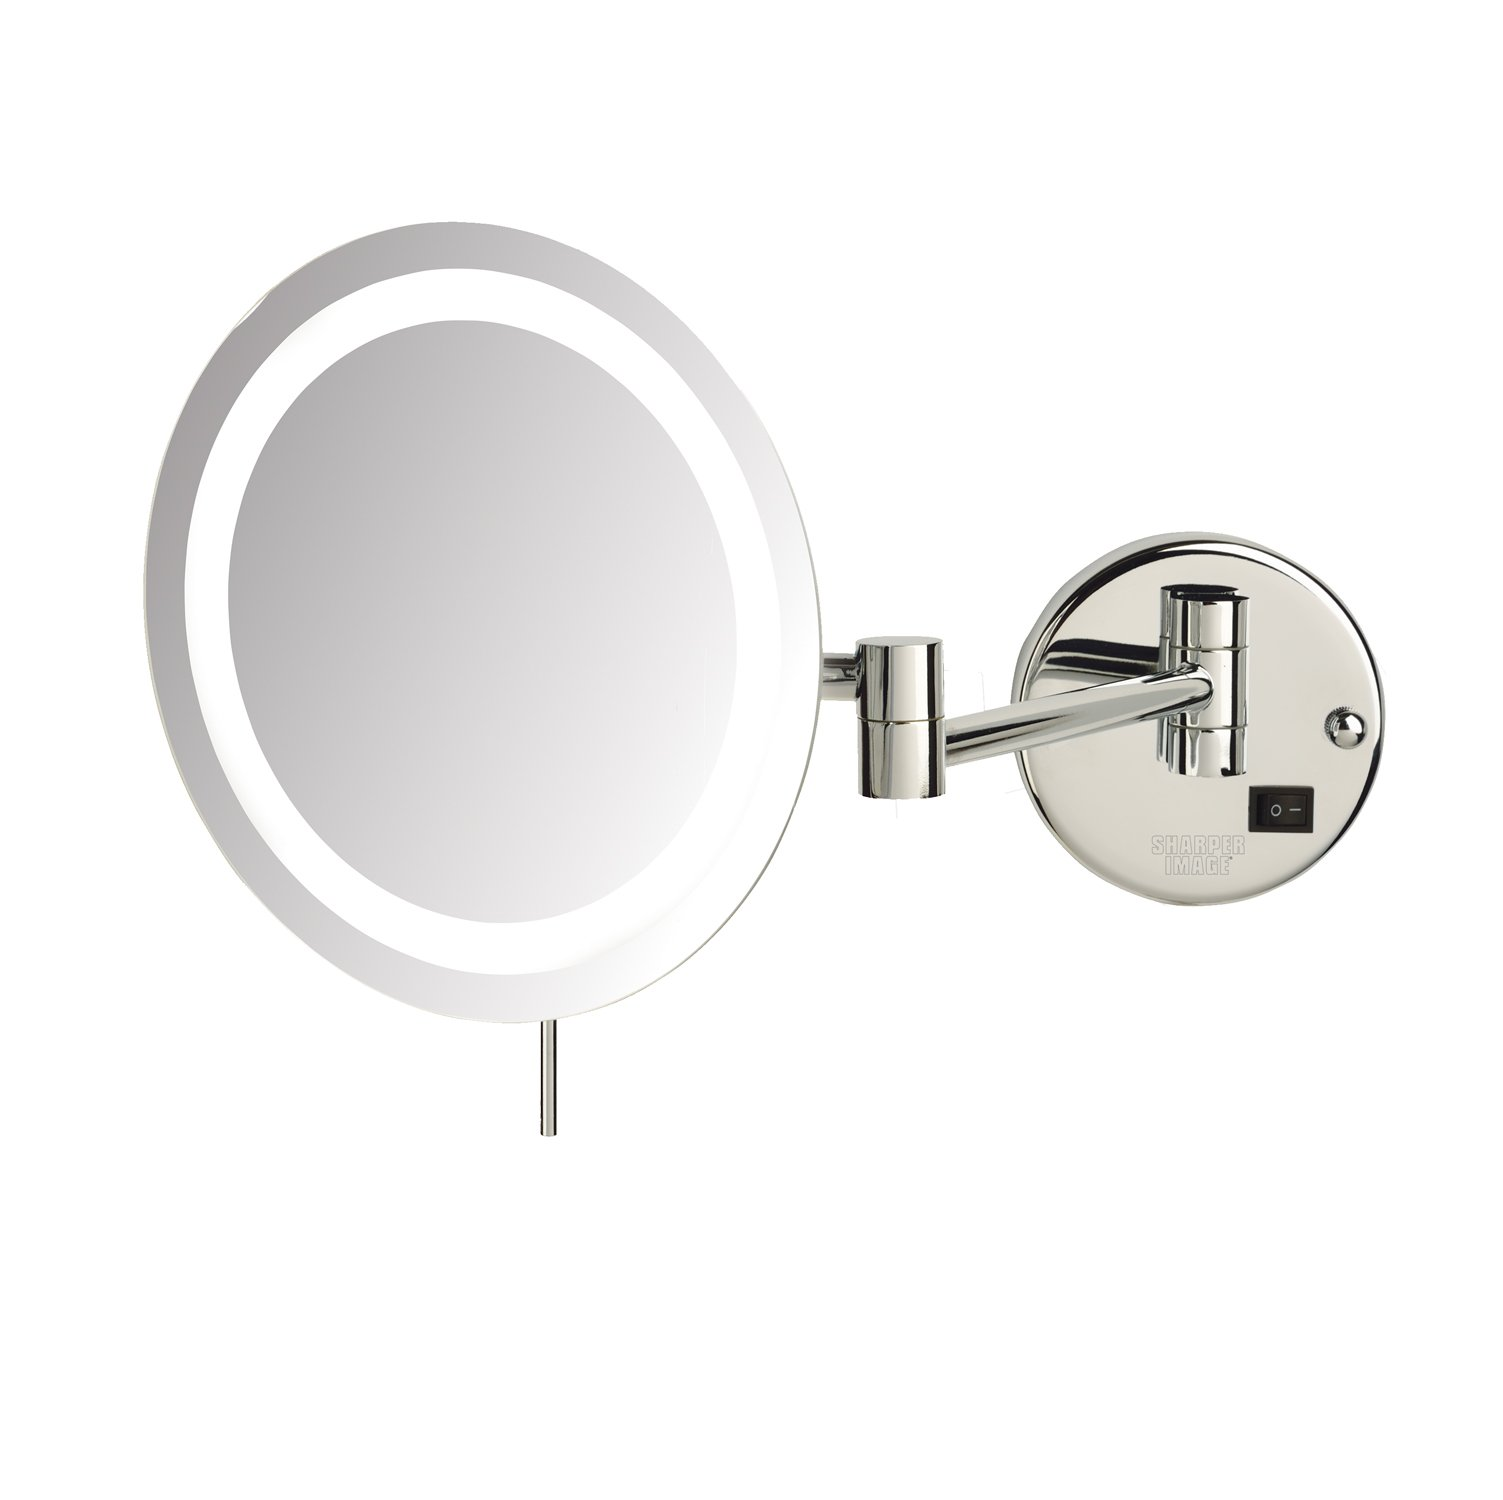 Sharper Image JRT718CL 8.5-inch Slimline LED Wall Mount 8x Magnifying Makeup Mirror, Chrome